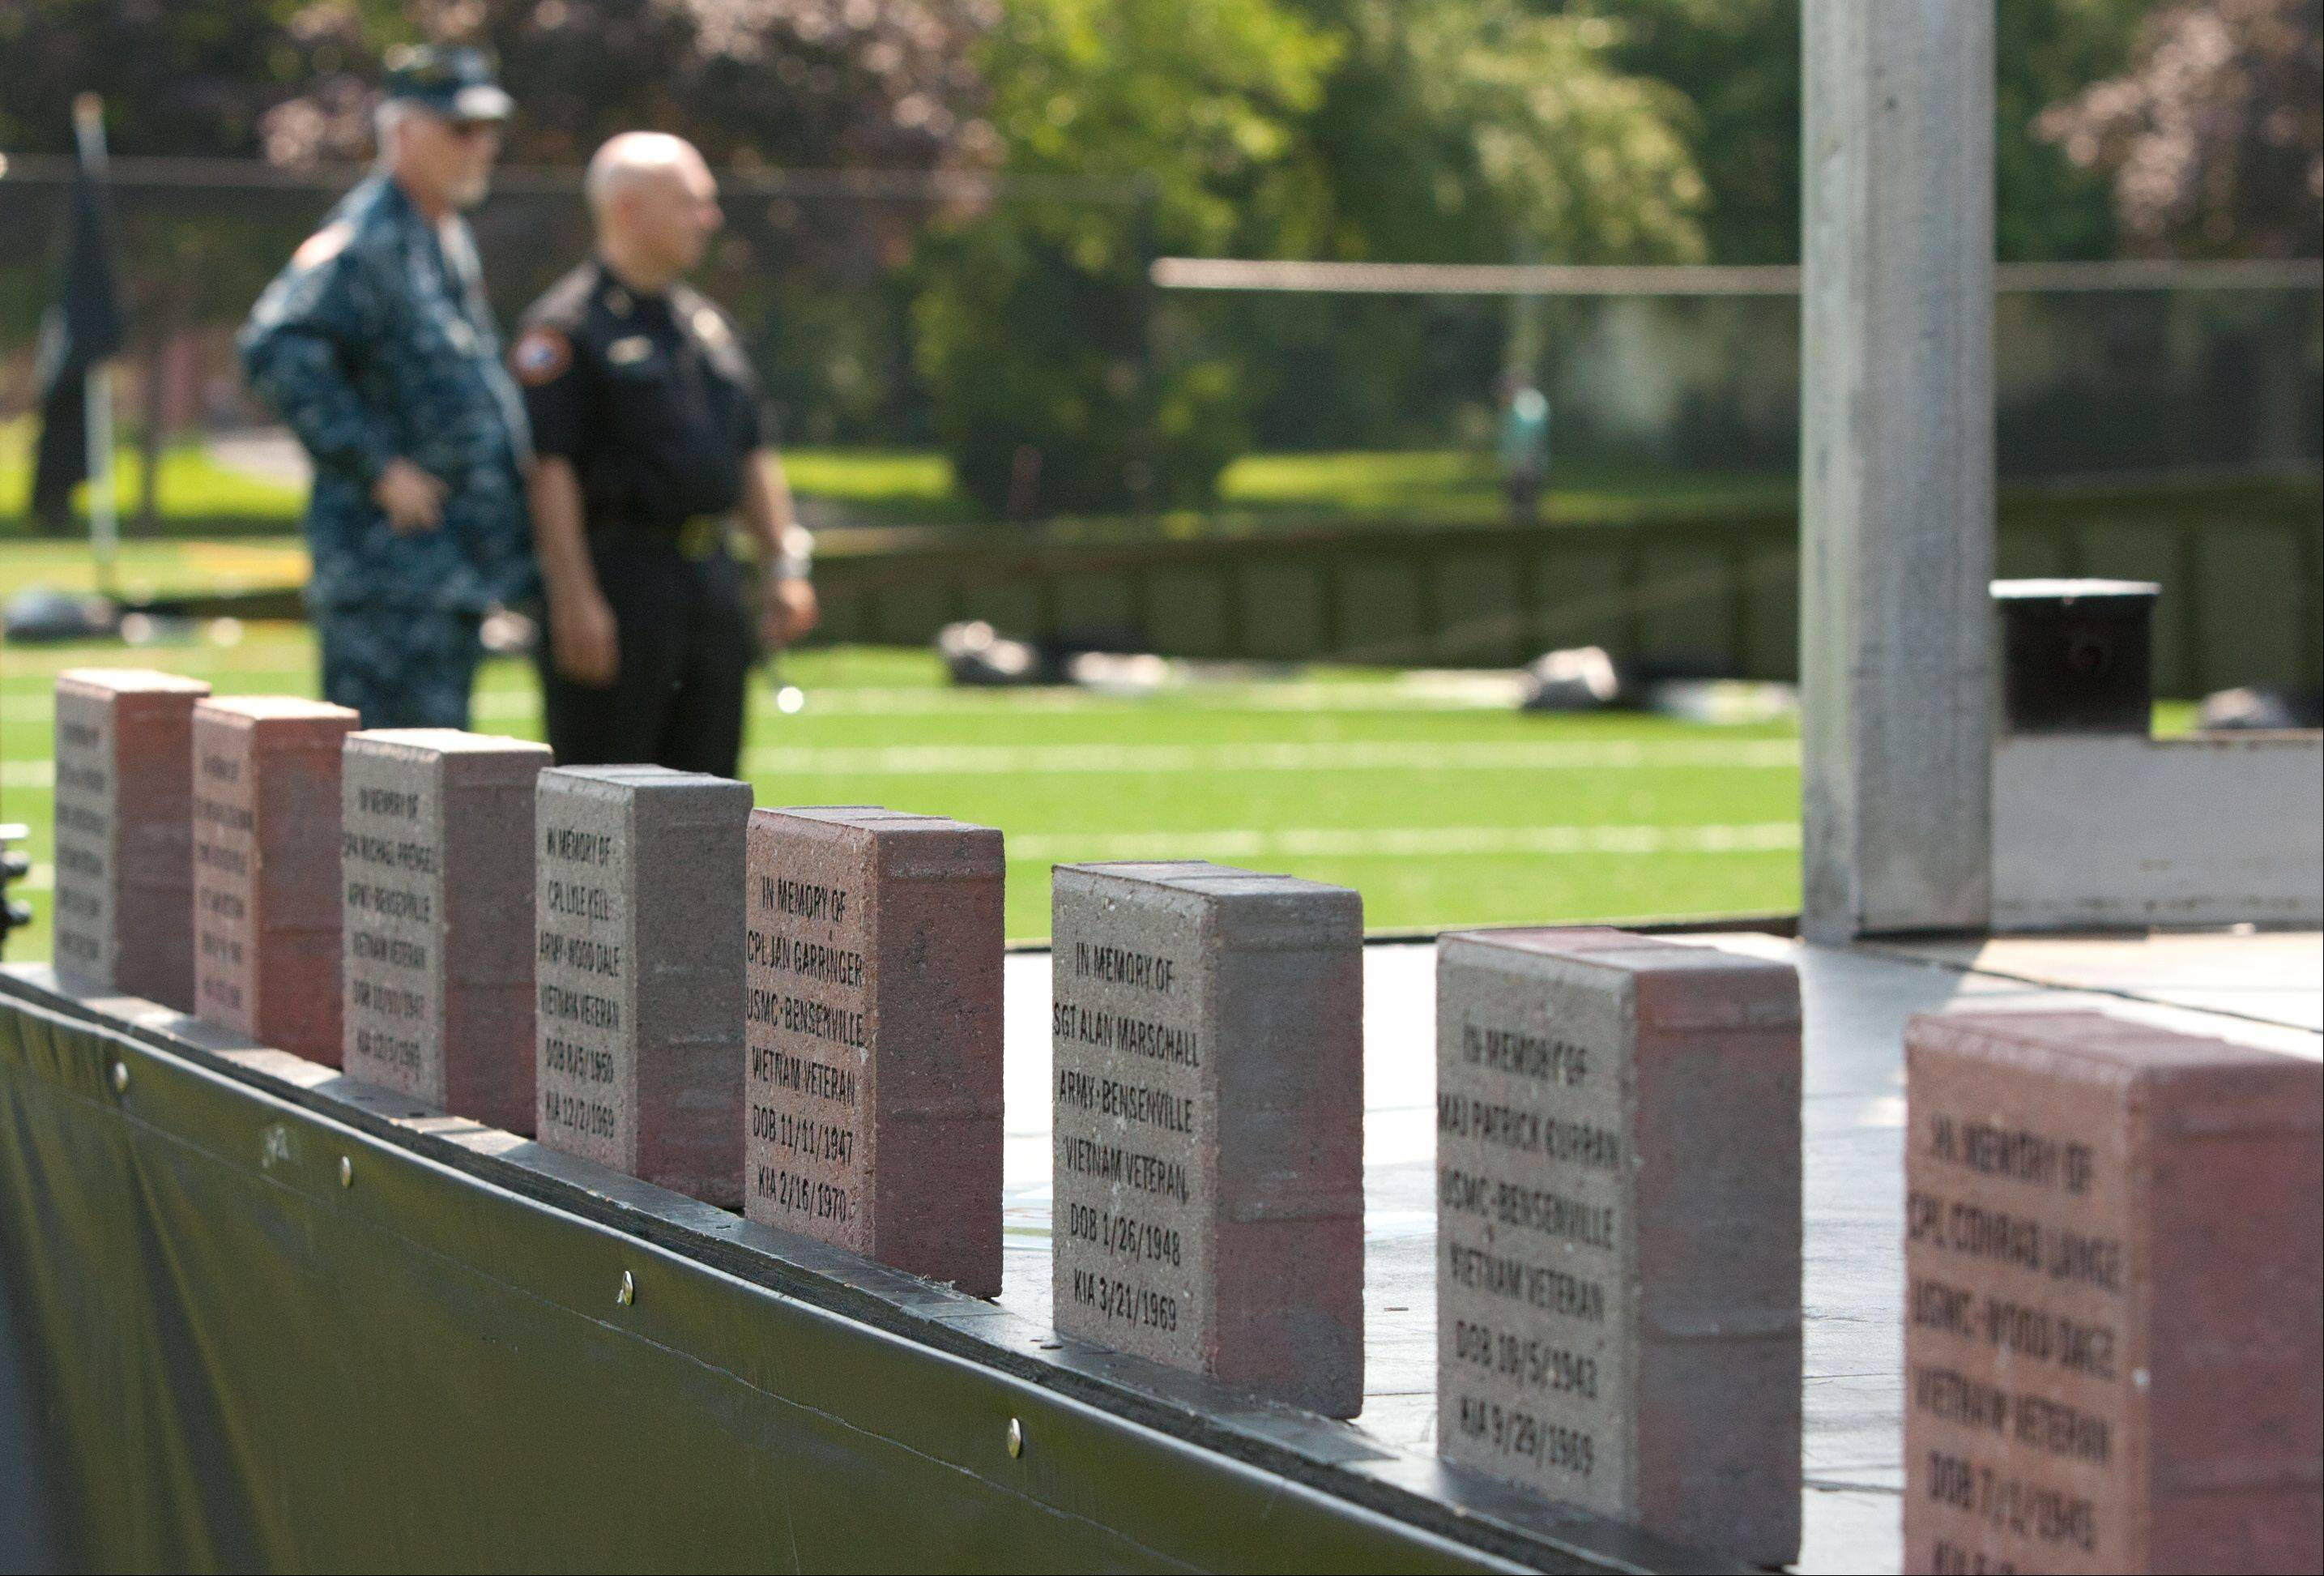 The names of former Fenton High School students killed in Vietnam are engraved in bricks that will be displayed permanently in Bensenville's Redmond Park or the village' downtown, officials said.